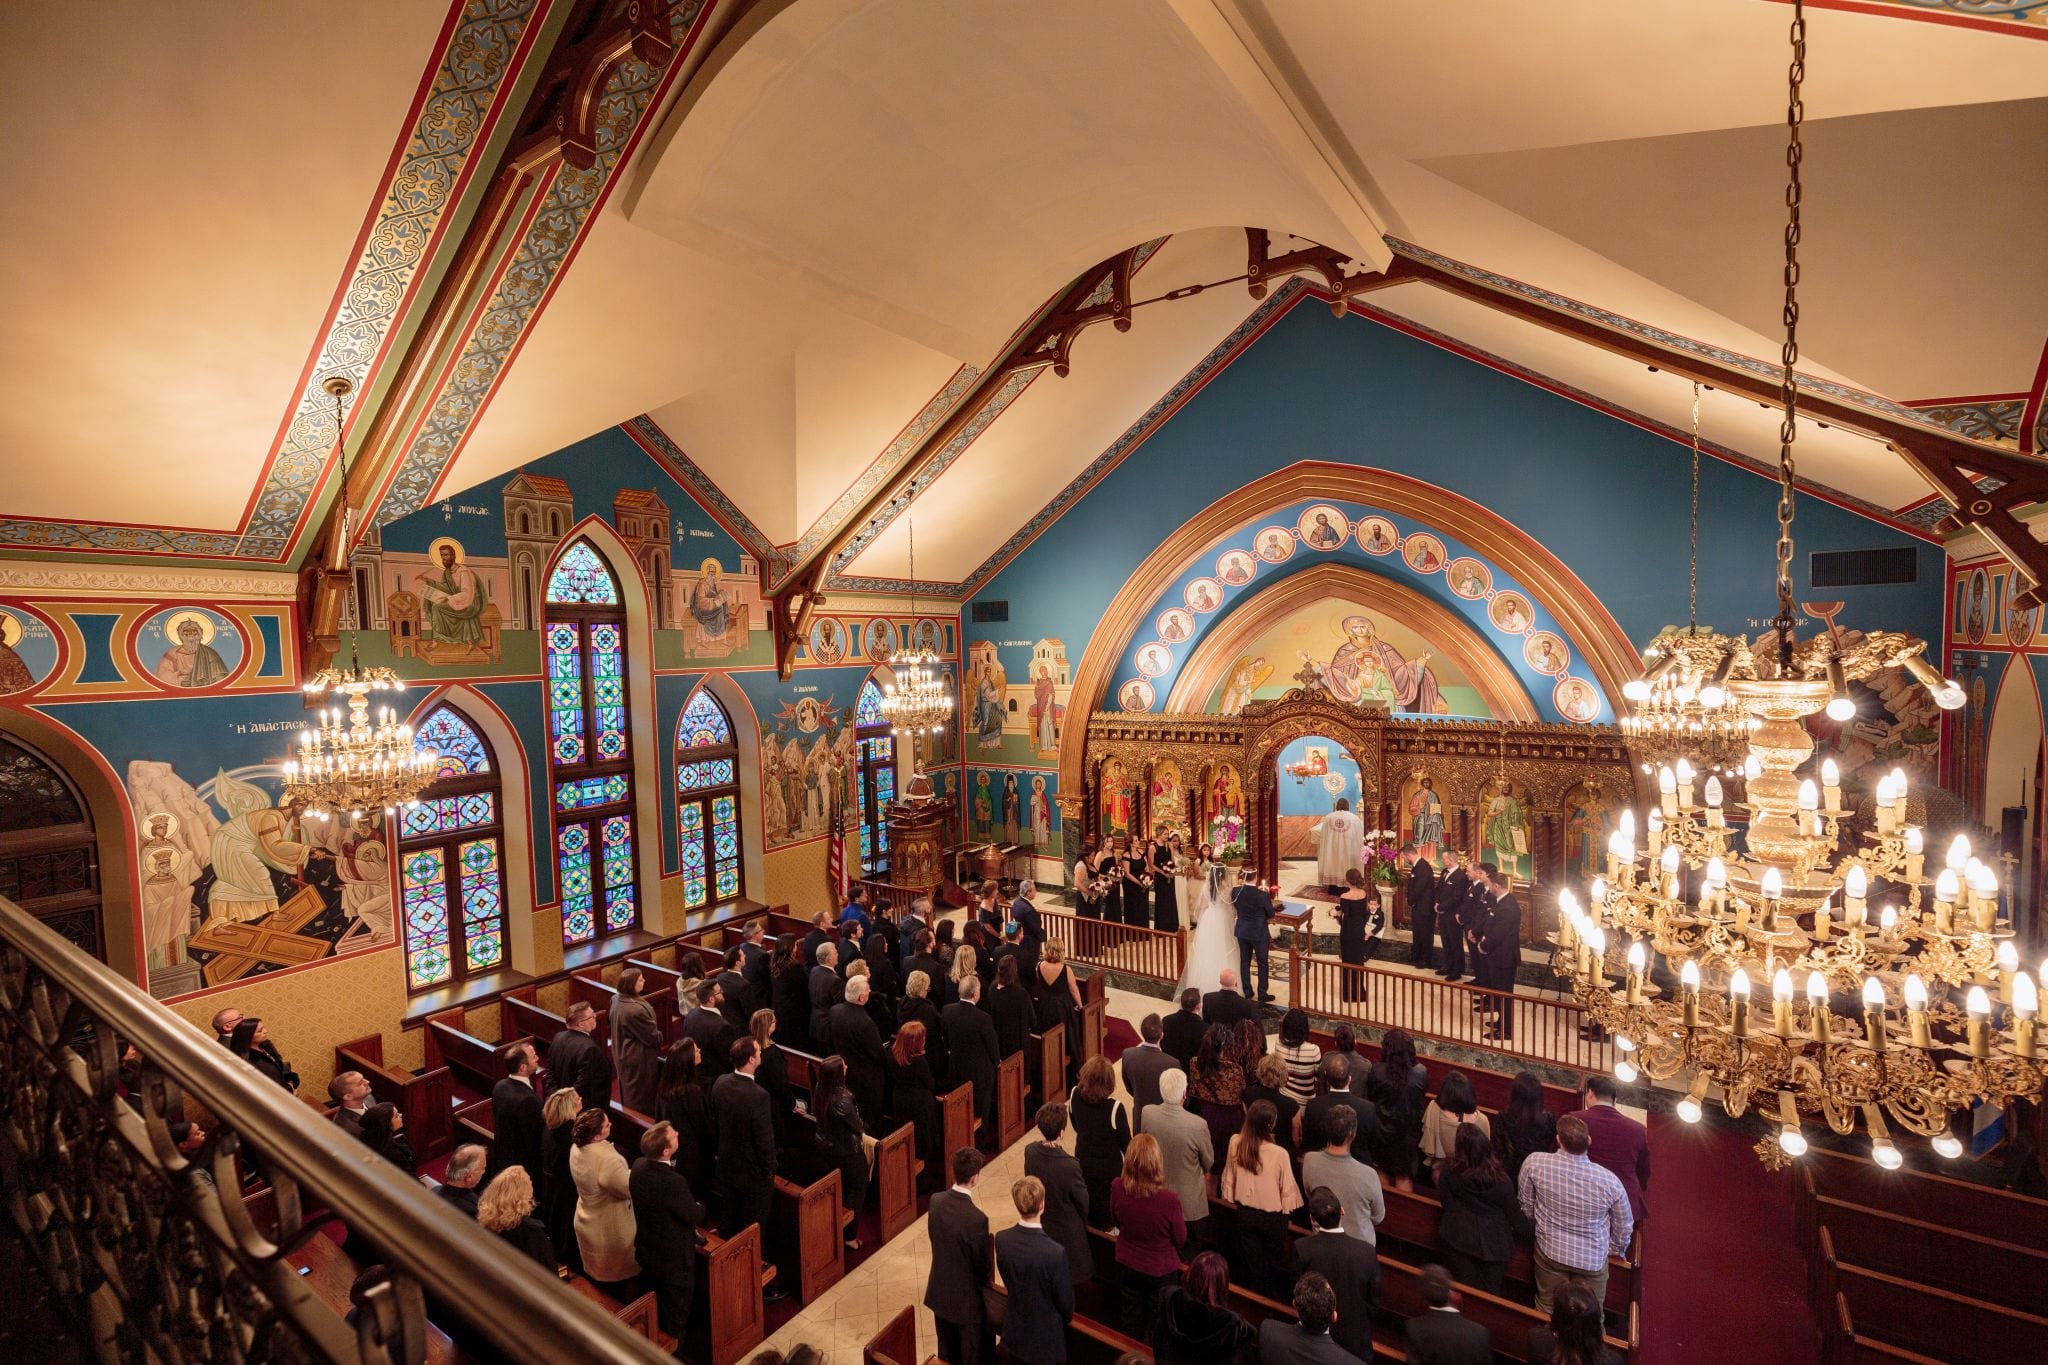 St George Greek Orthodox Wedding Photography